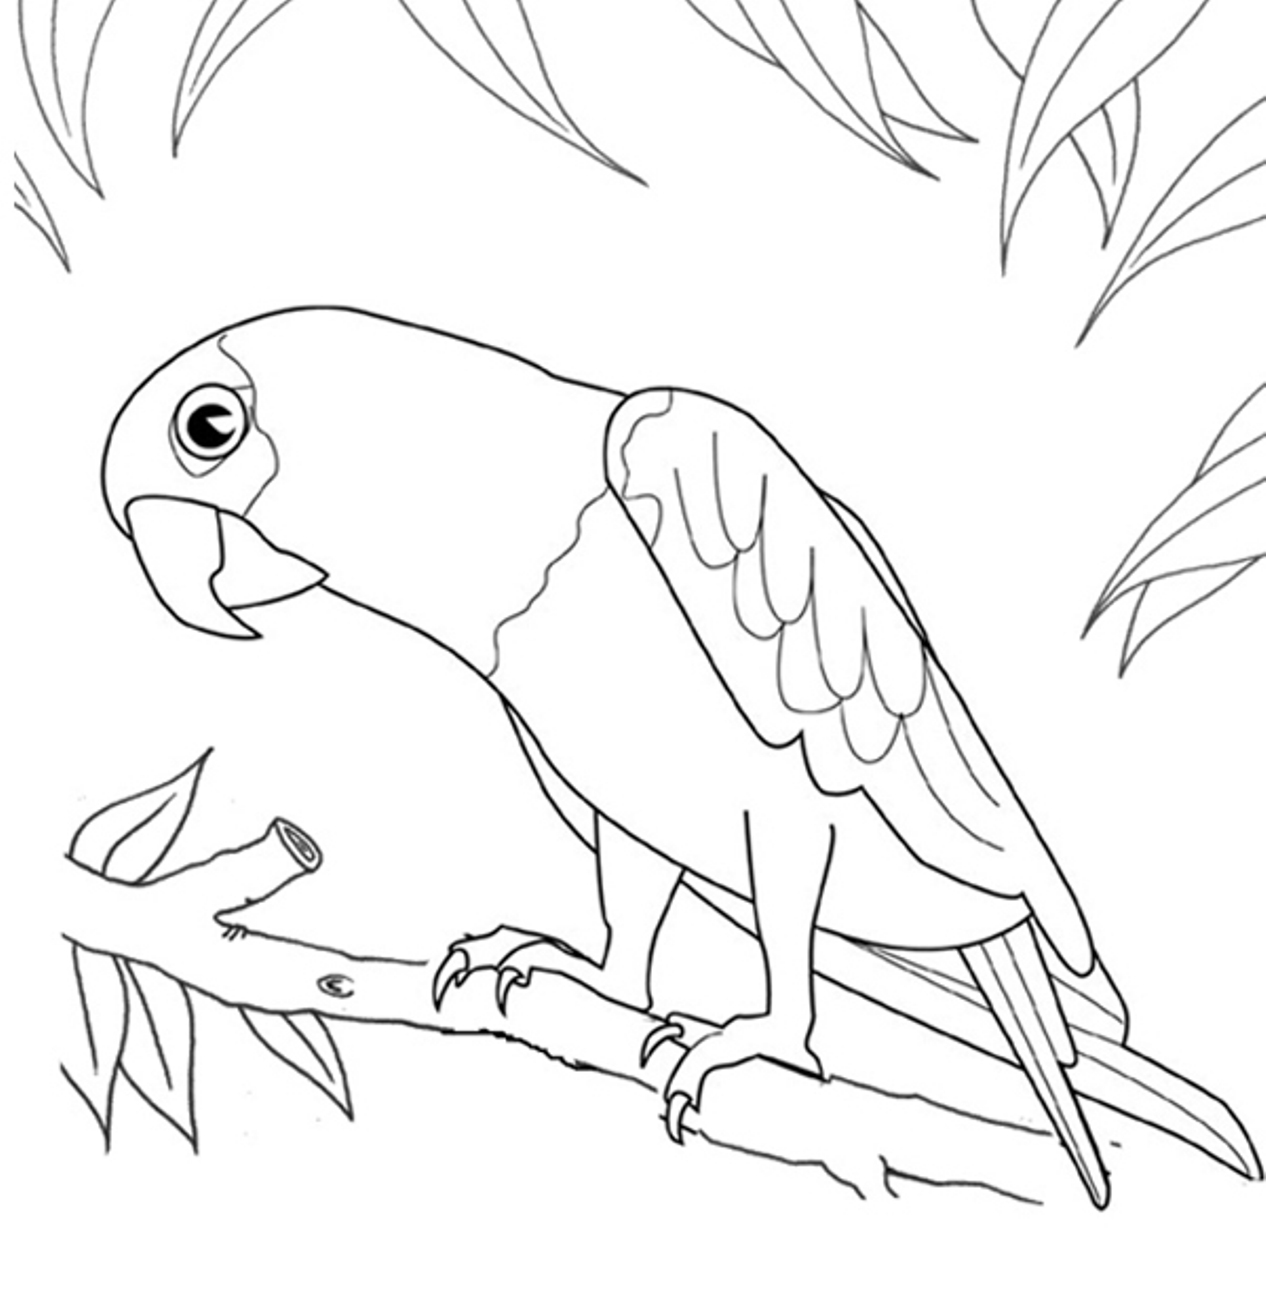 without parrot colouring